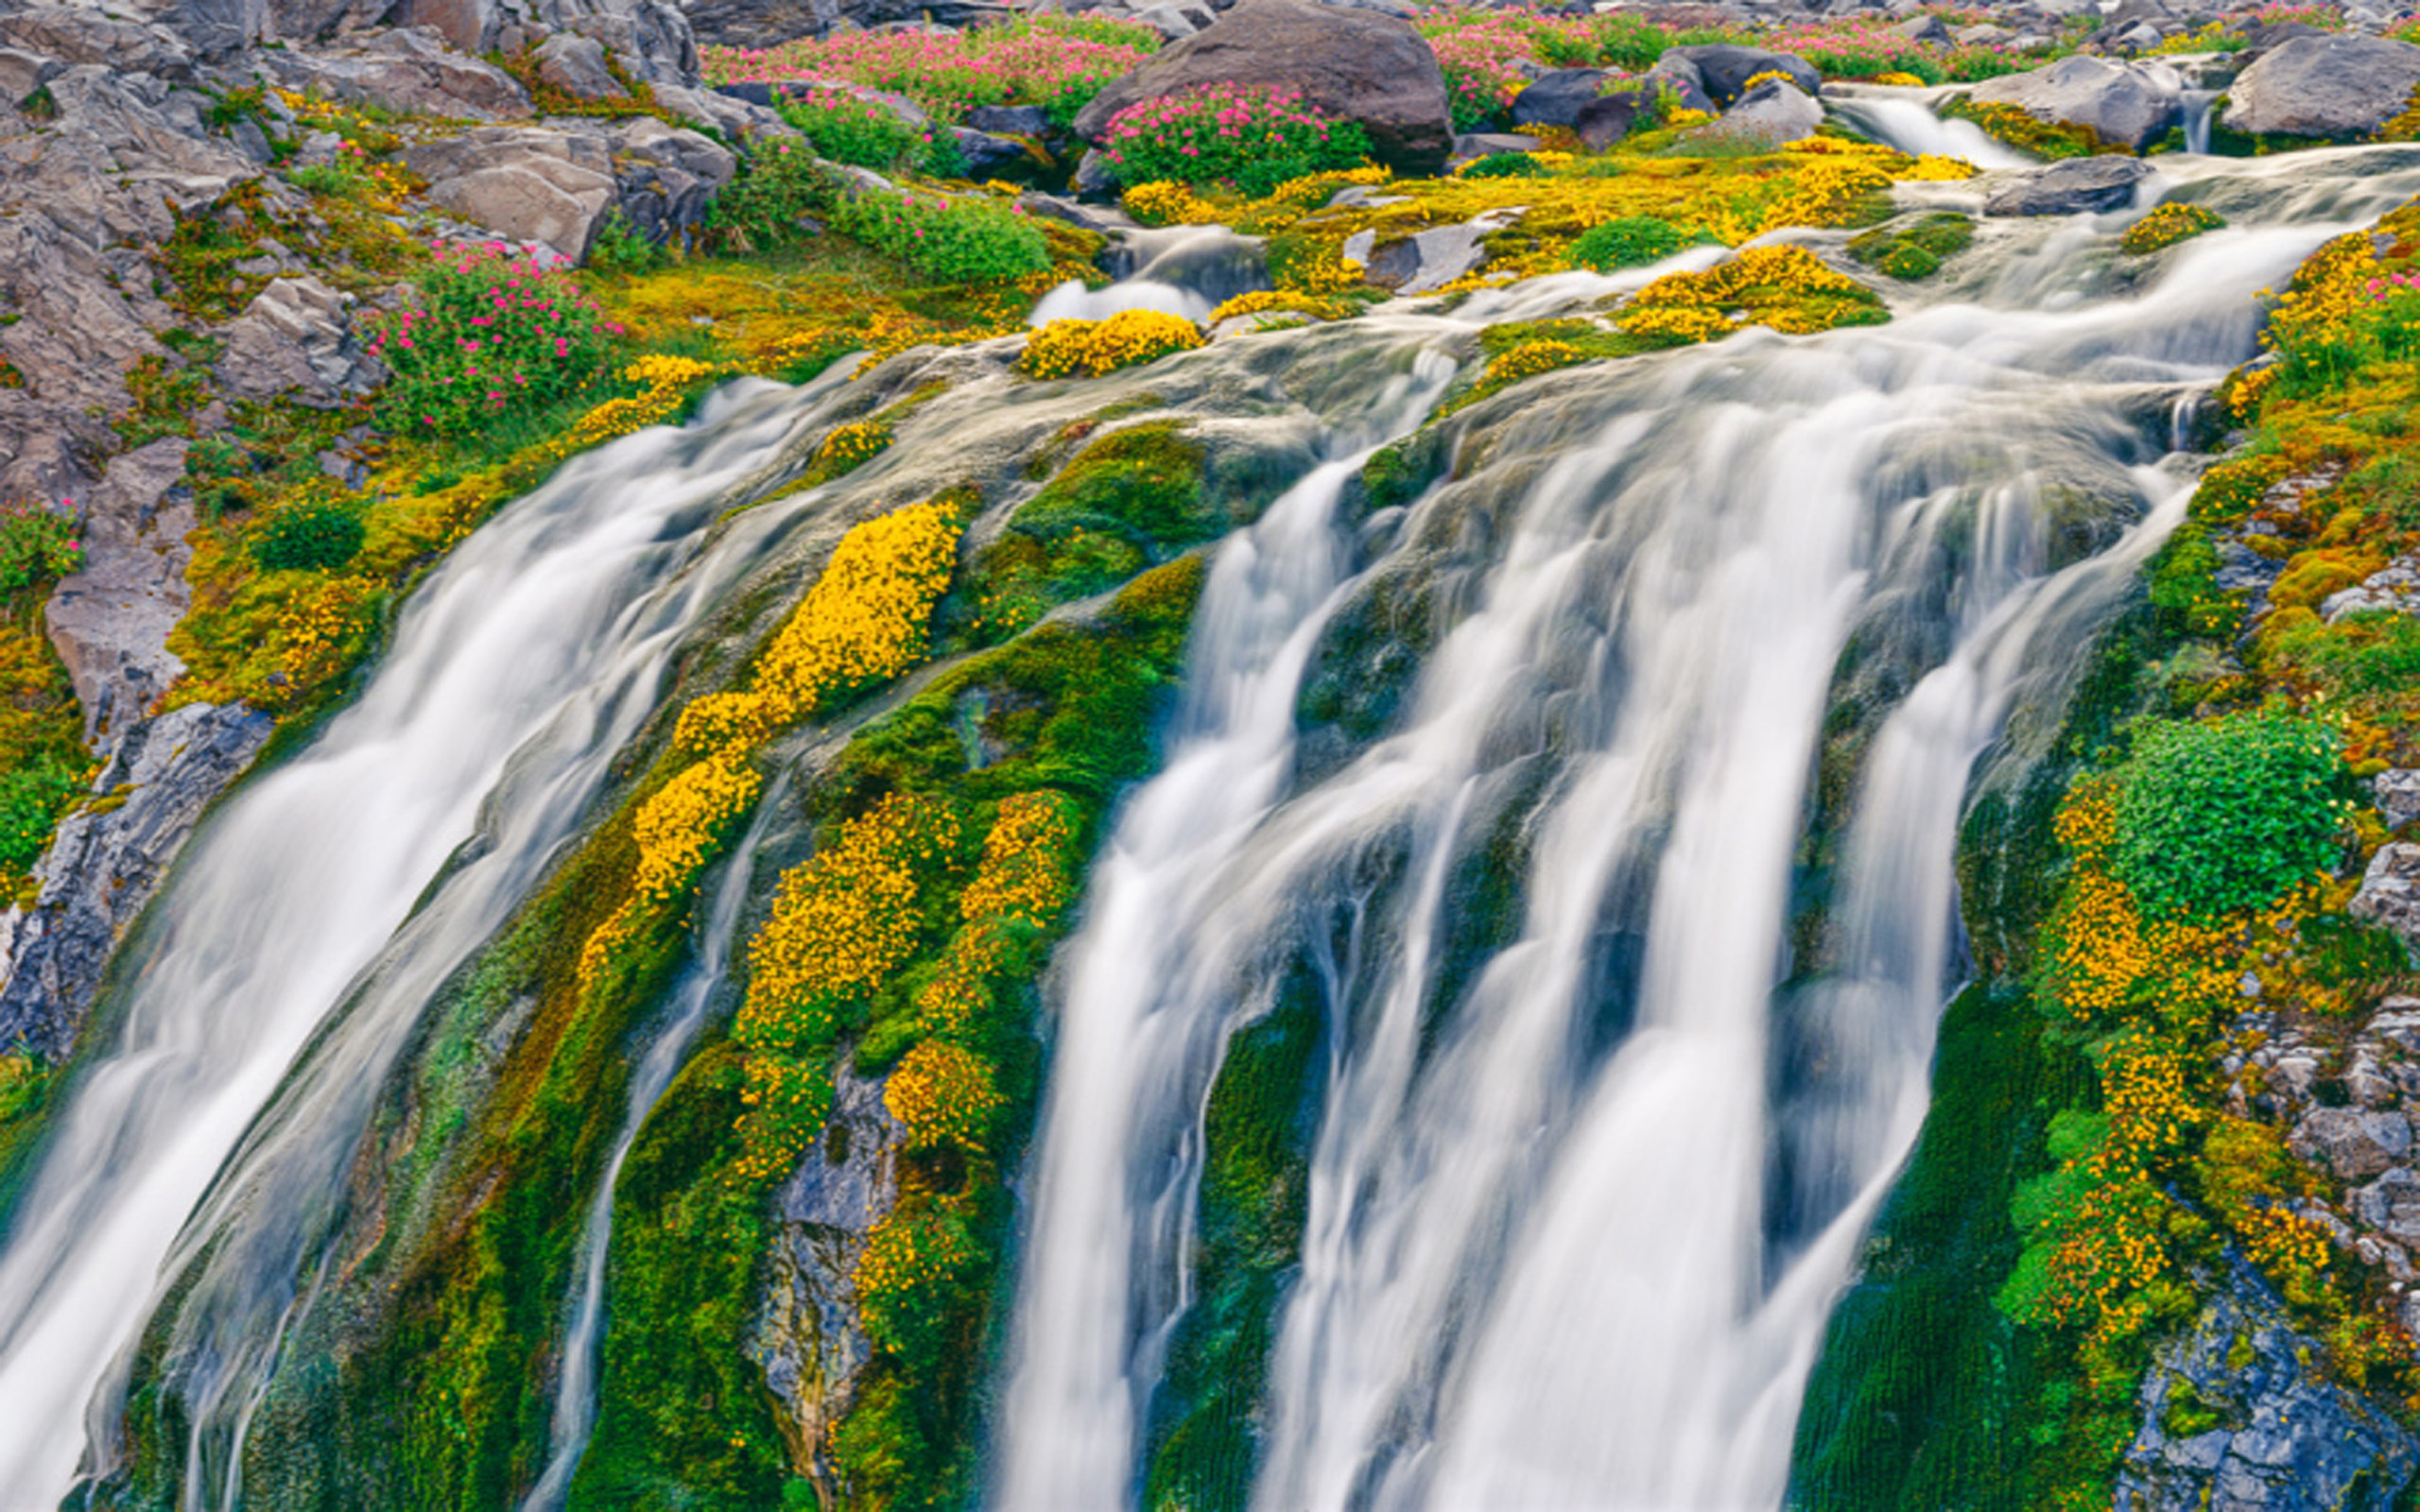 Fall Flowers Wallpaper For Desktop Waterfall In Spring Yellow And Pink Flowers In Mount